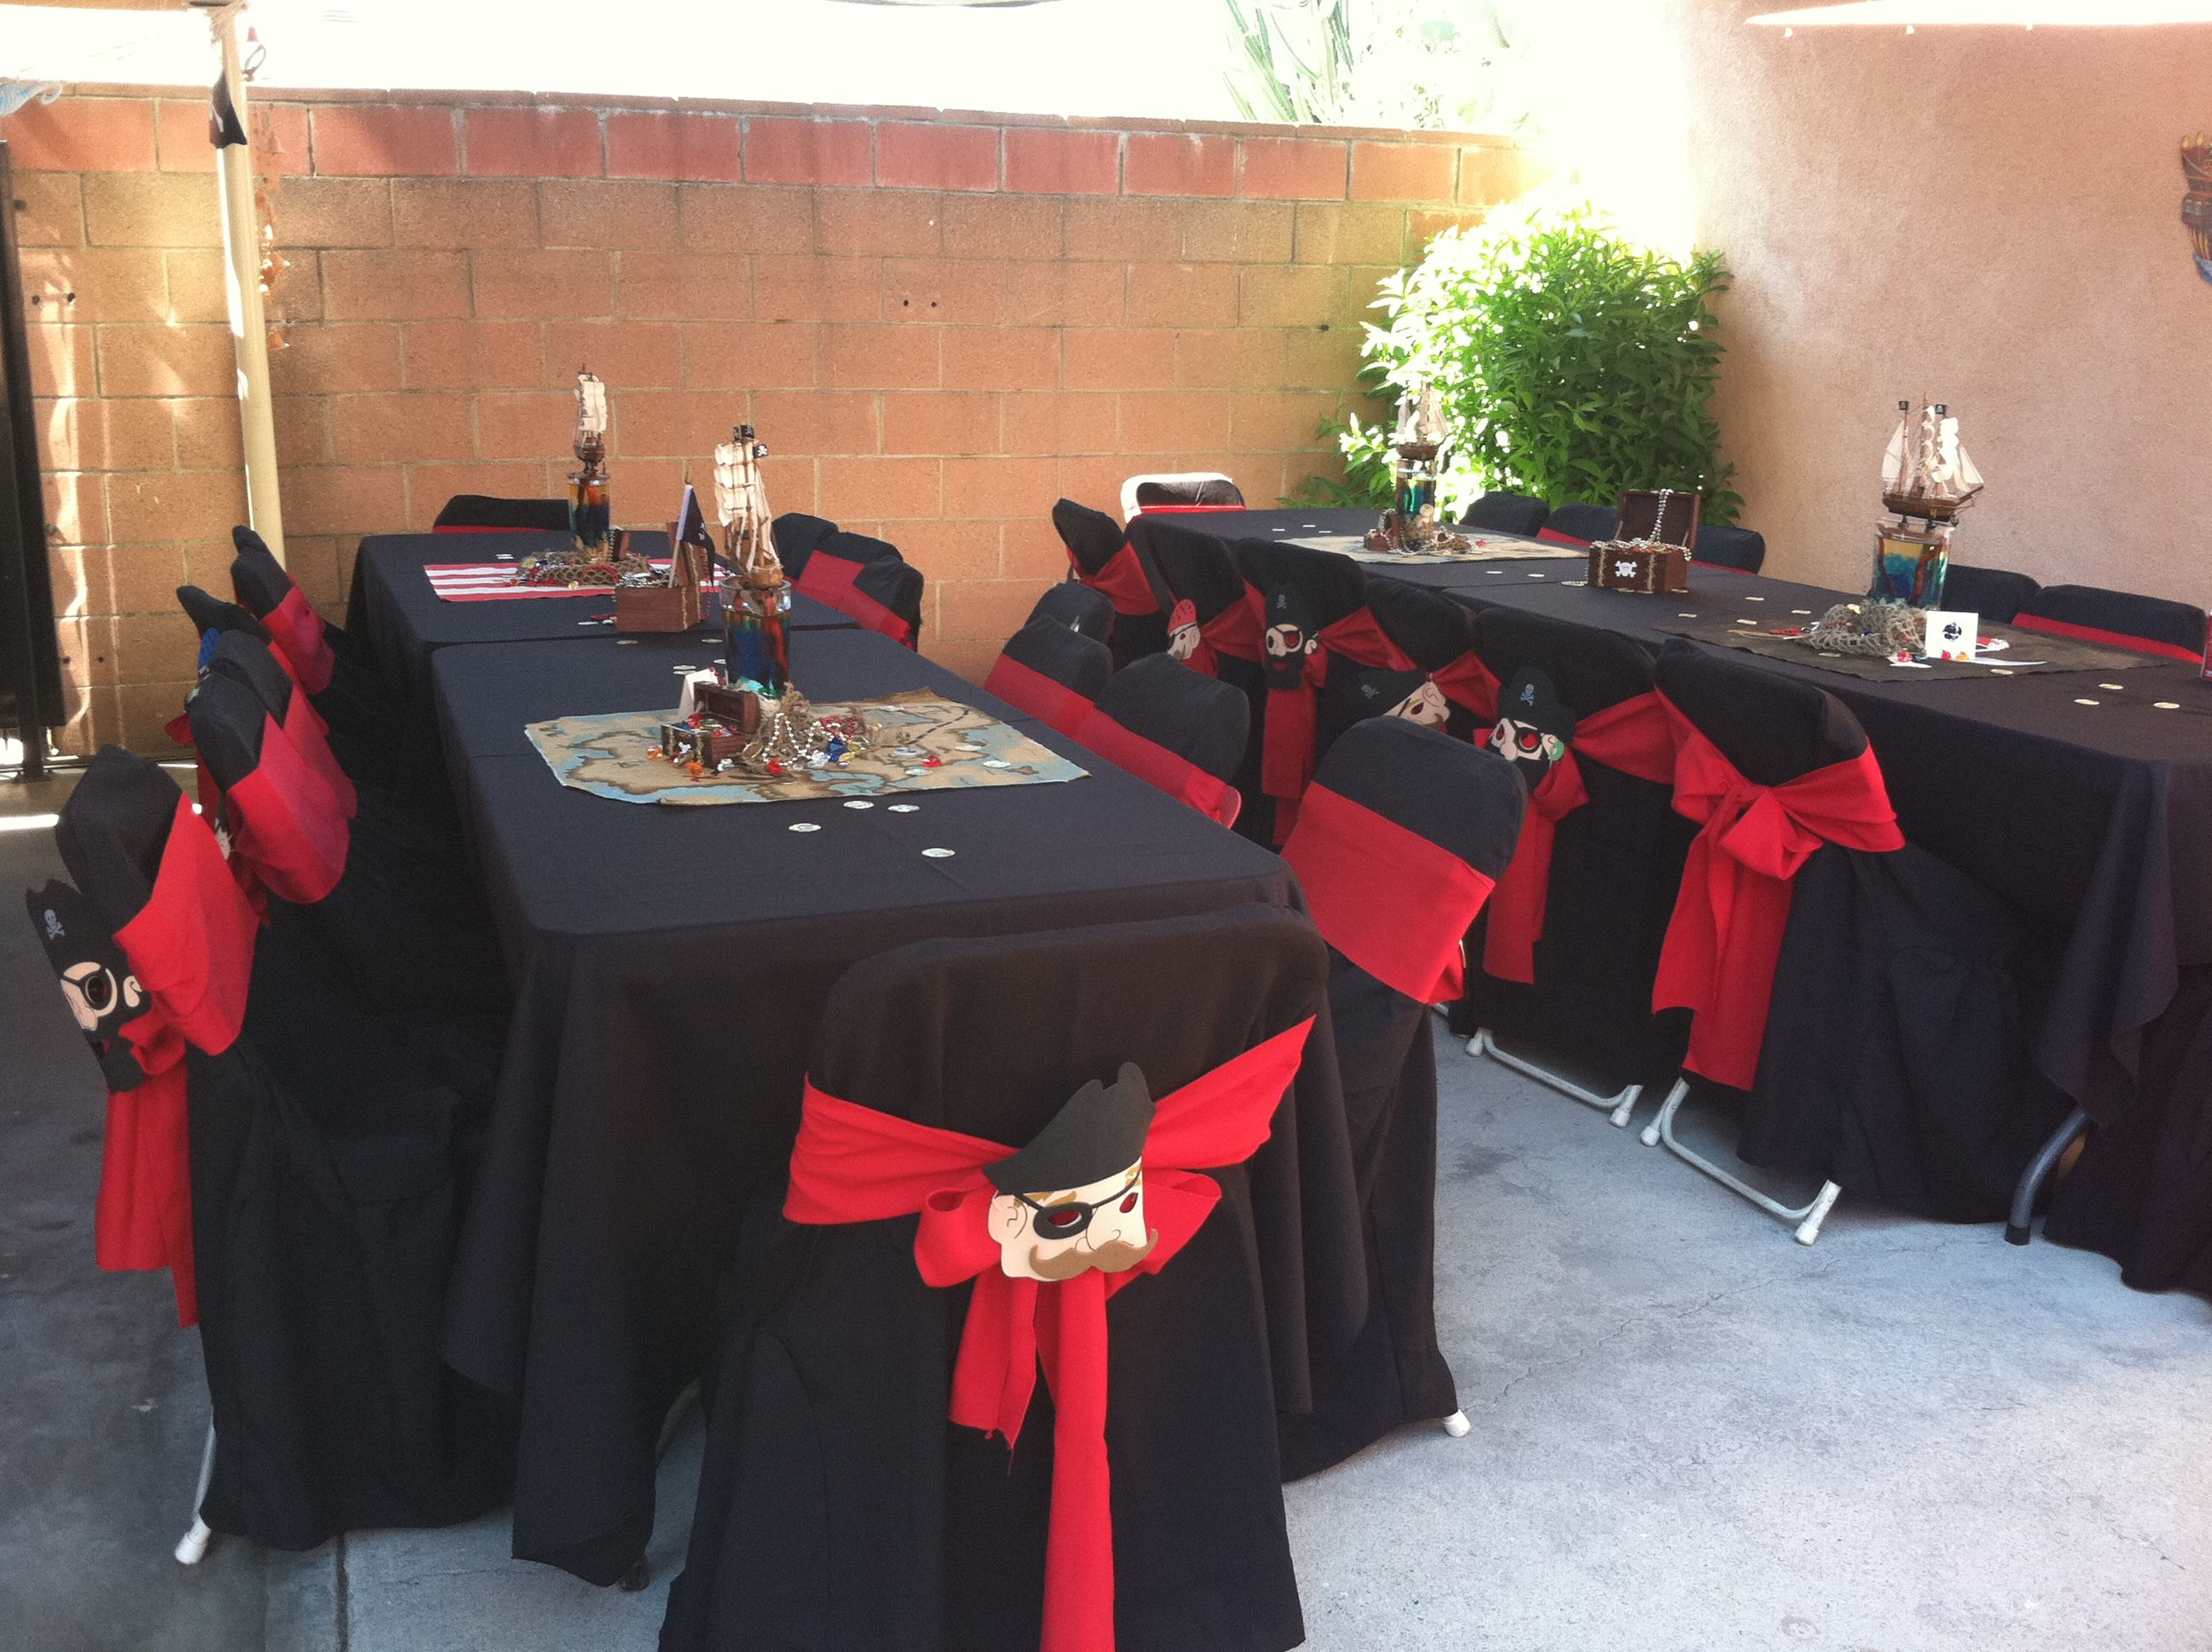 Pirate Party Decoration Black Table Cloth Black Chair Covers With Red Bow And Foamie Pirate Mask Chair Covers Party Plastic Chair Covers Chair Covers